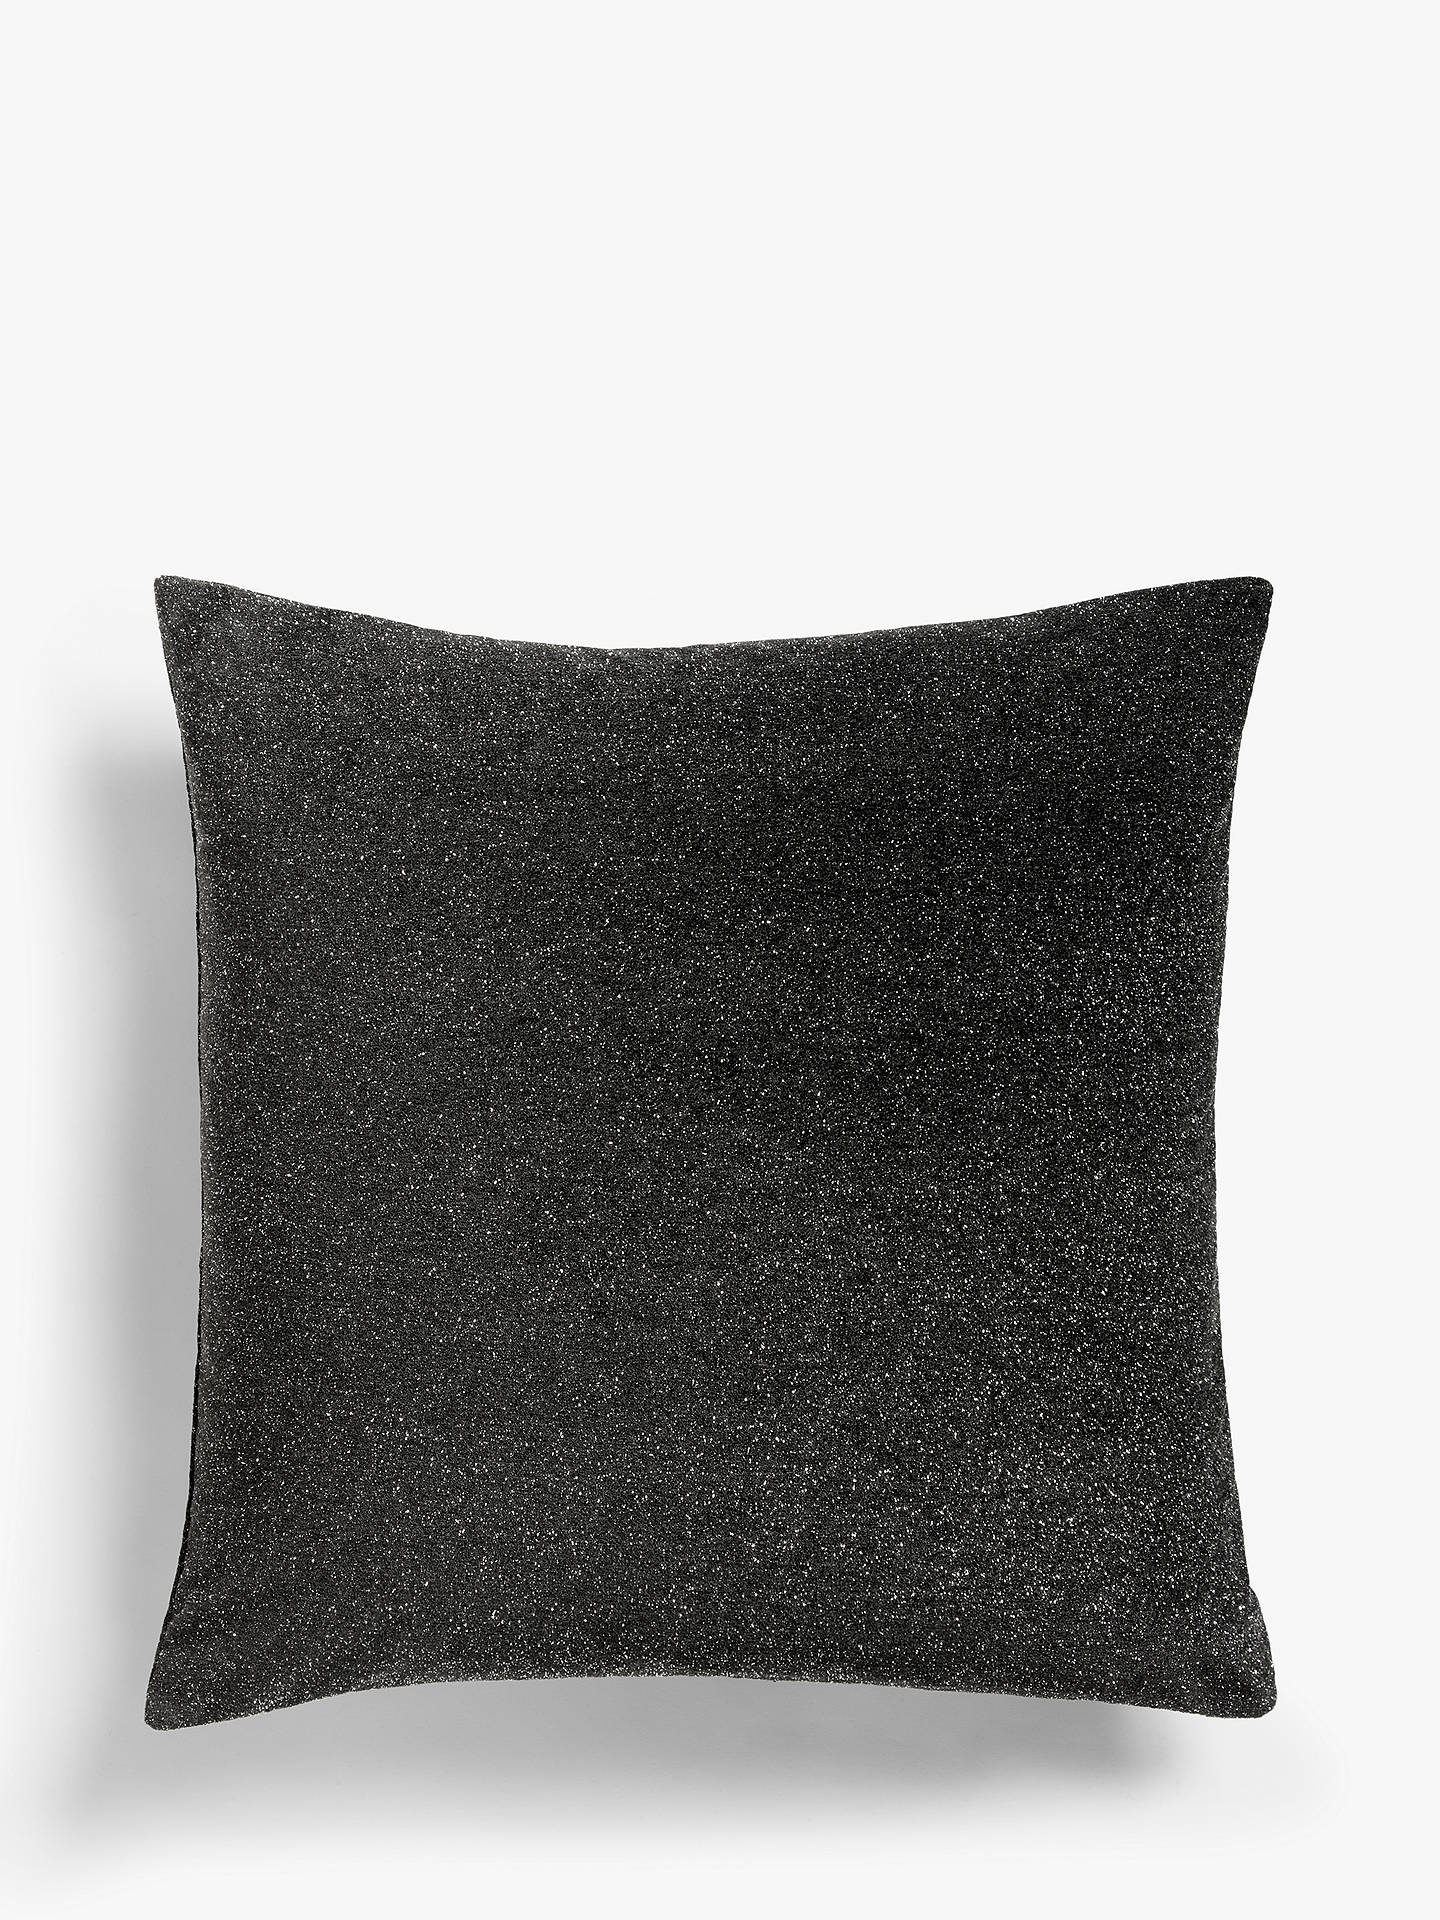 Buy John Lewis & Partners Misano Sparkle Cushion, Graphite Online at johnlewis.com